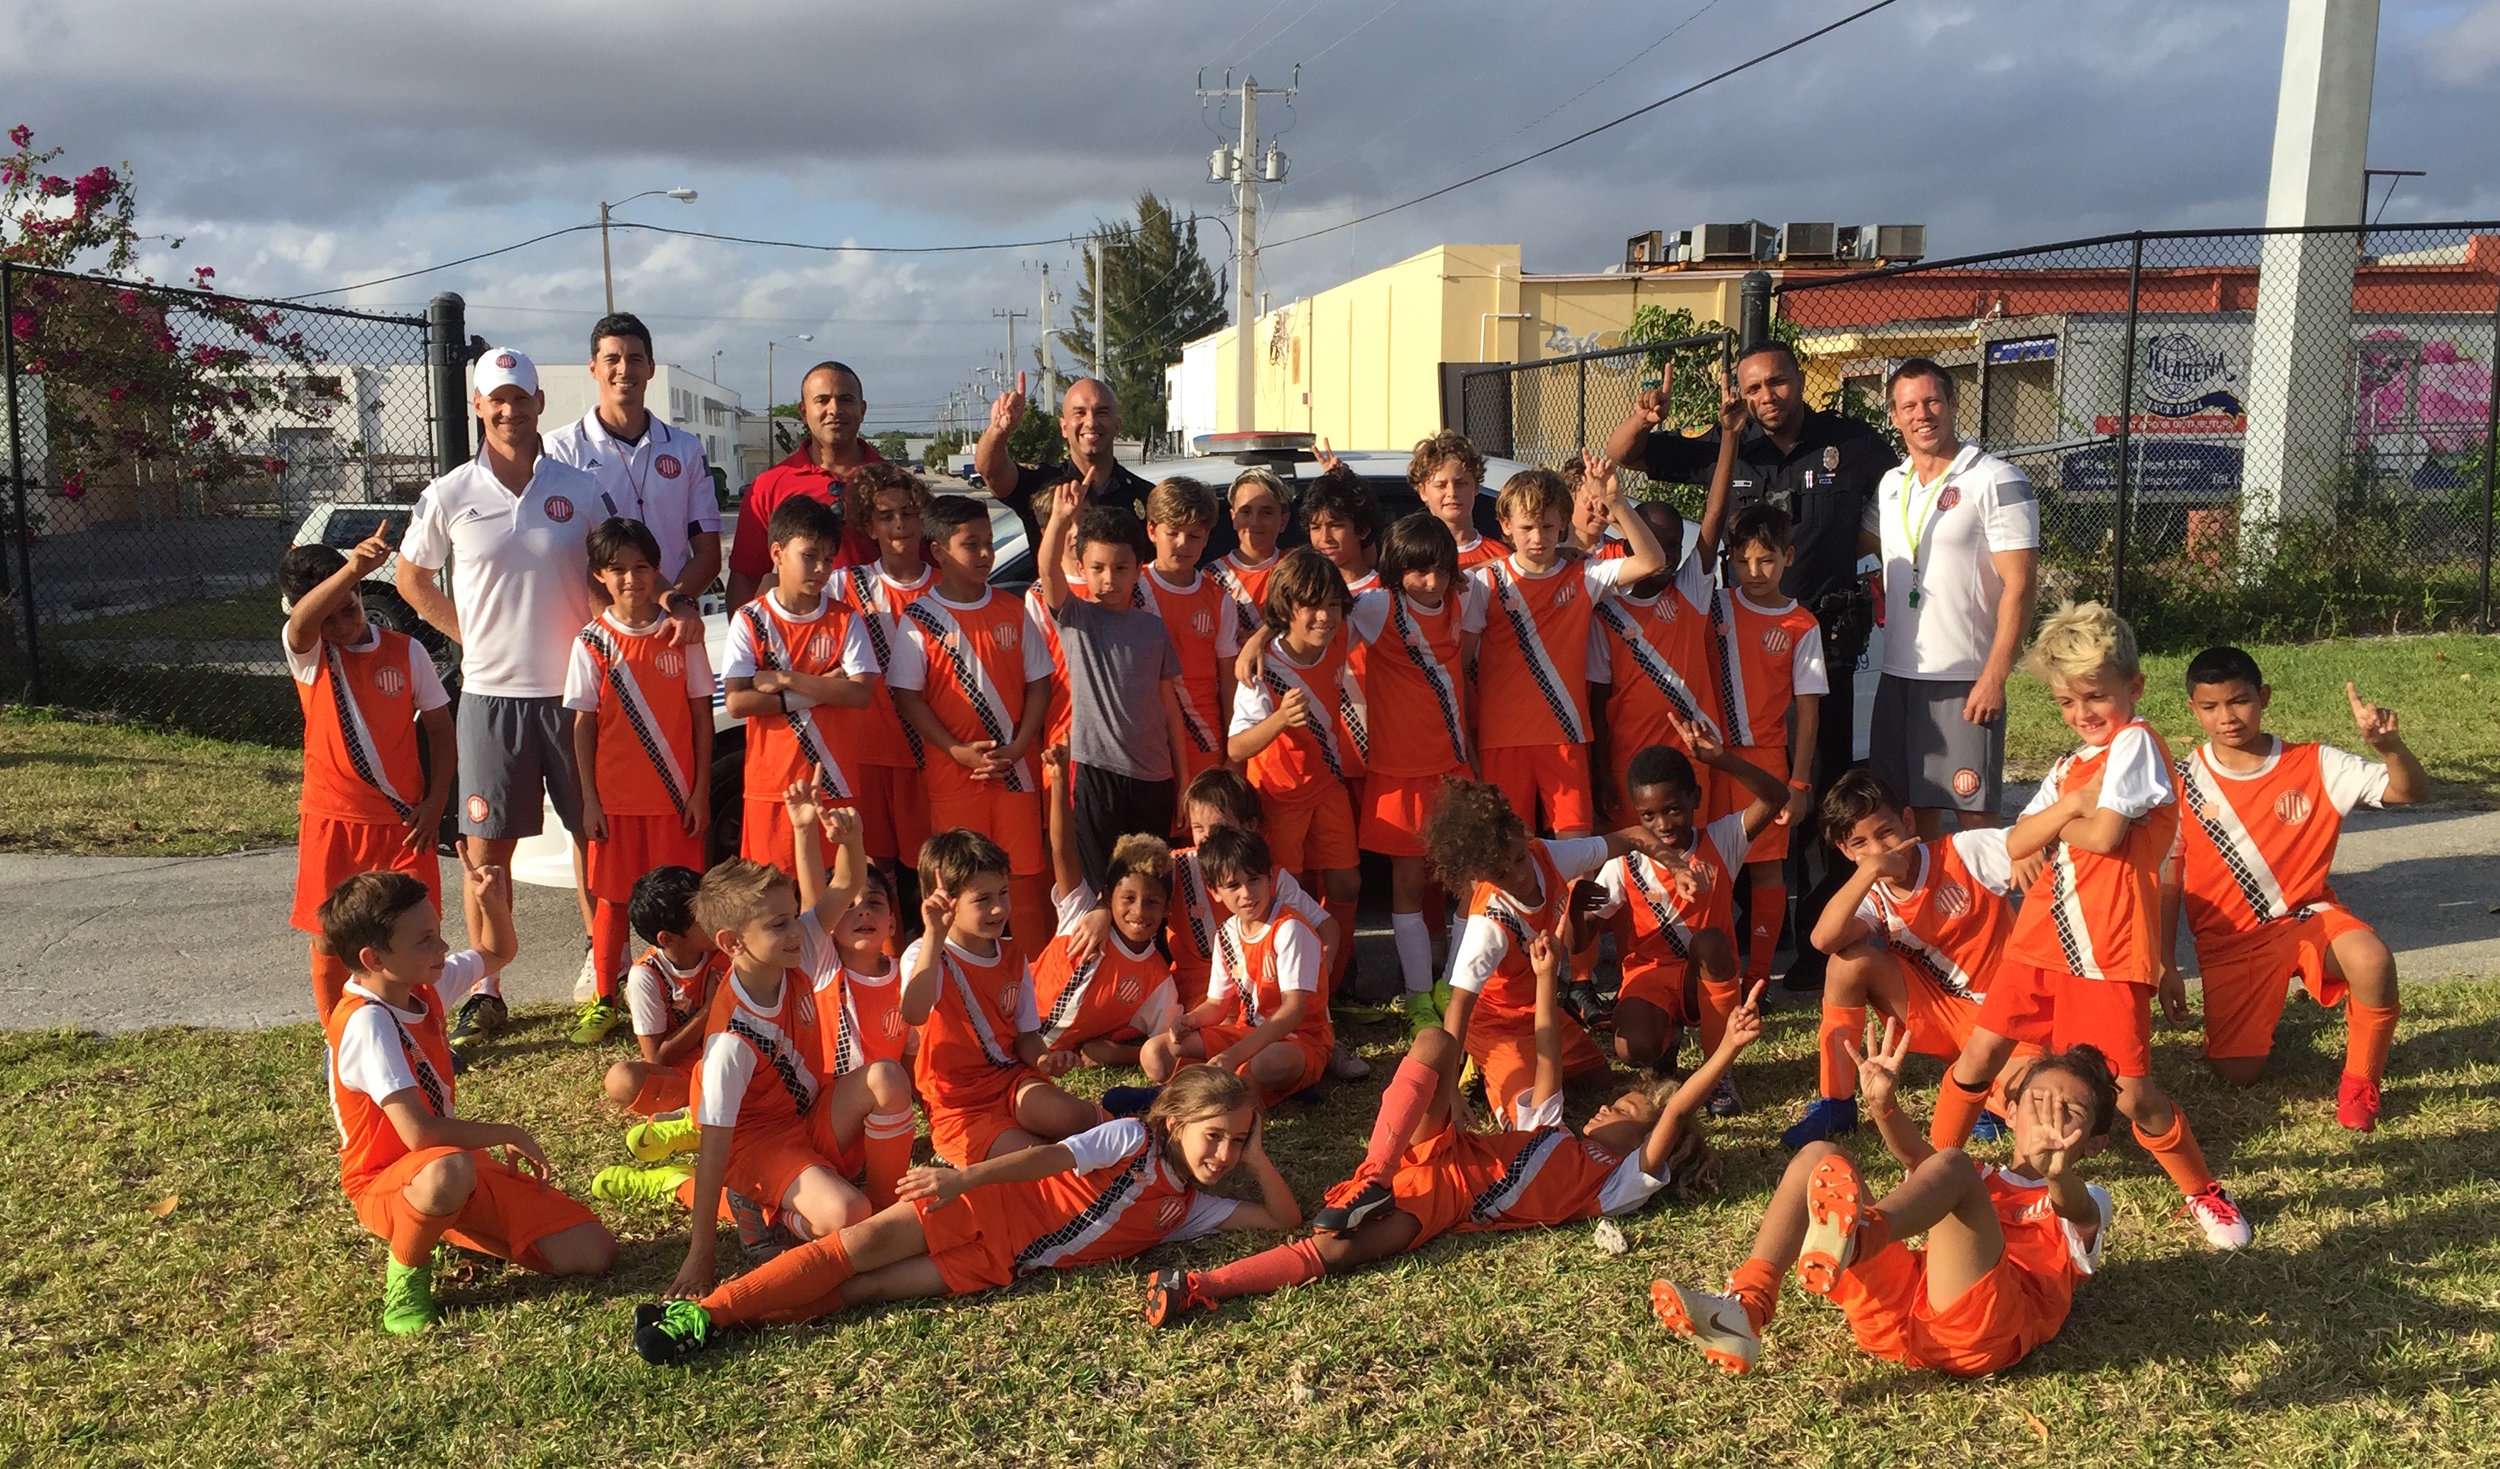 City of Miami Police Department and Athletic Club Miami Youth Soccer